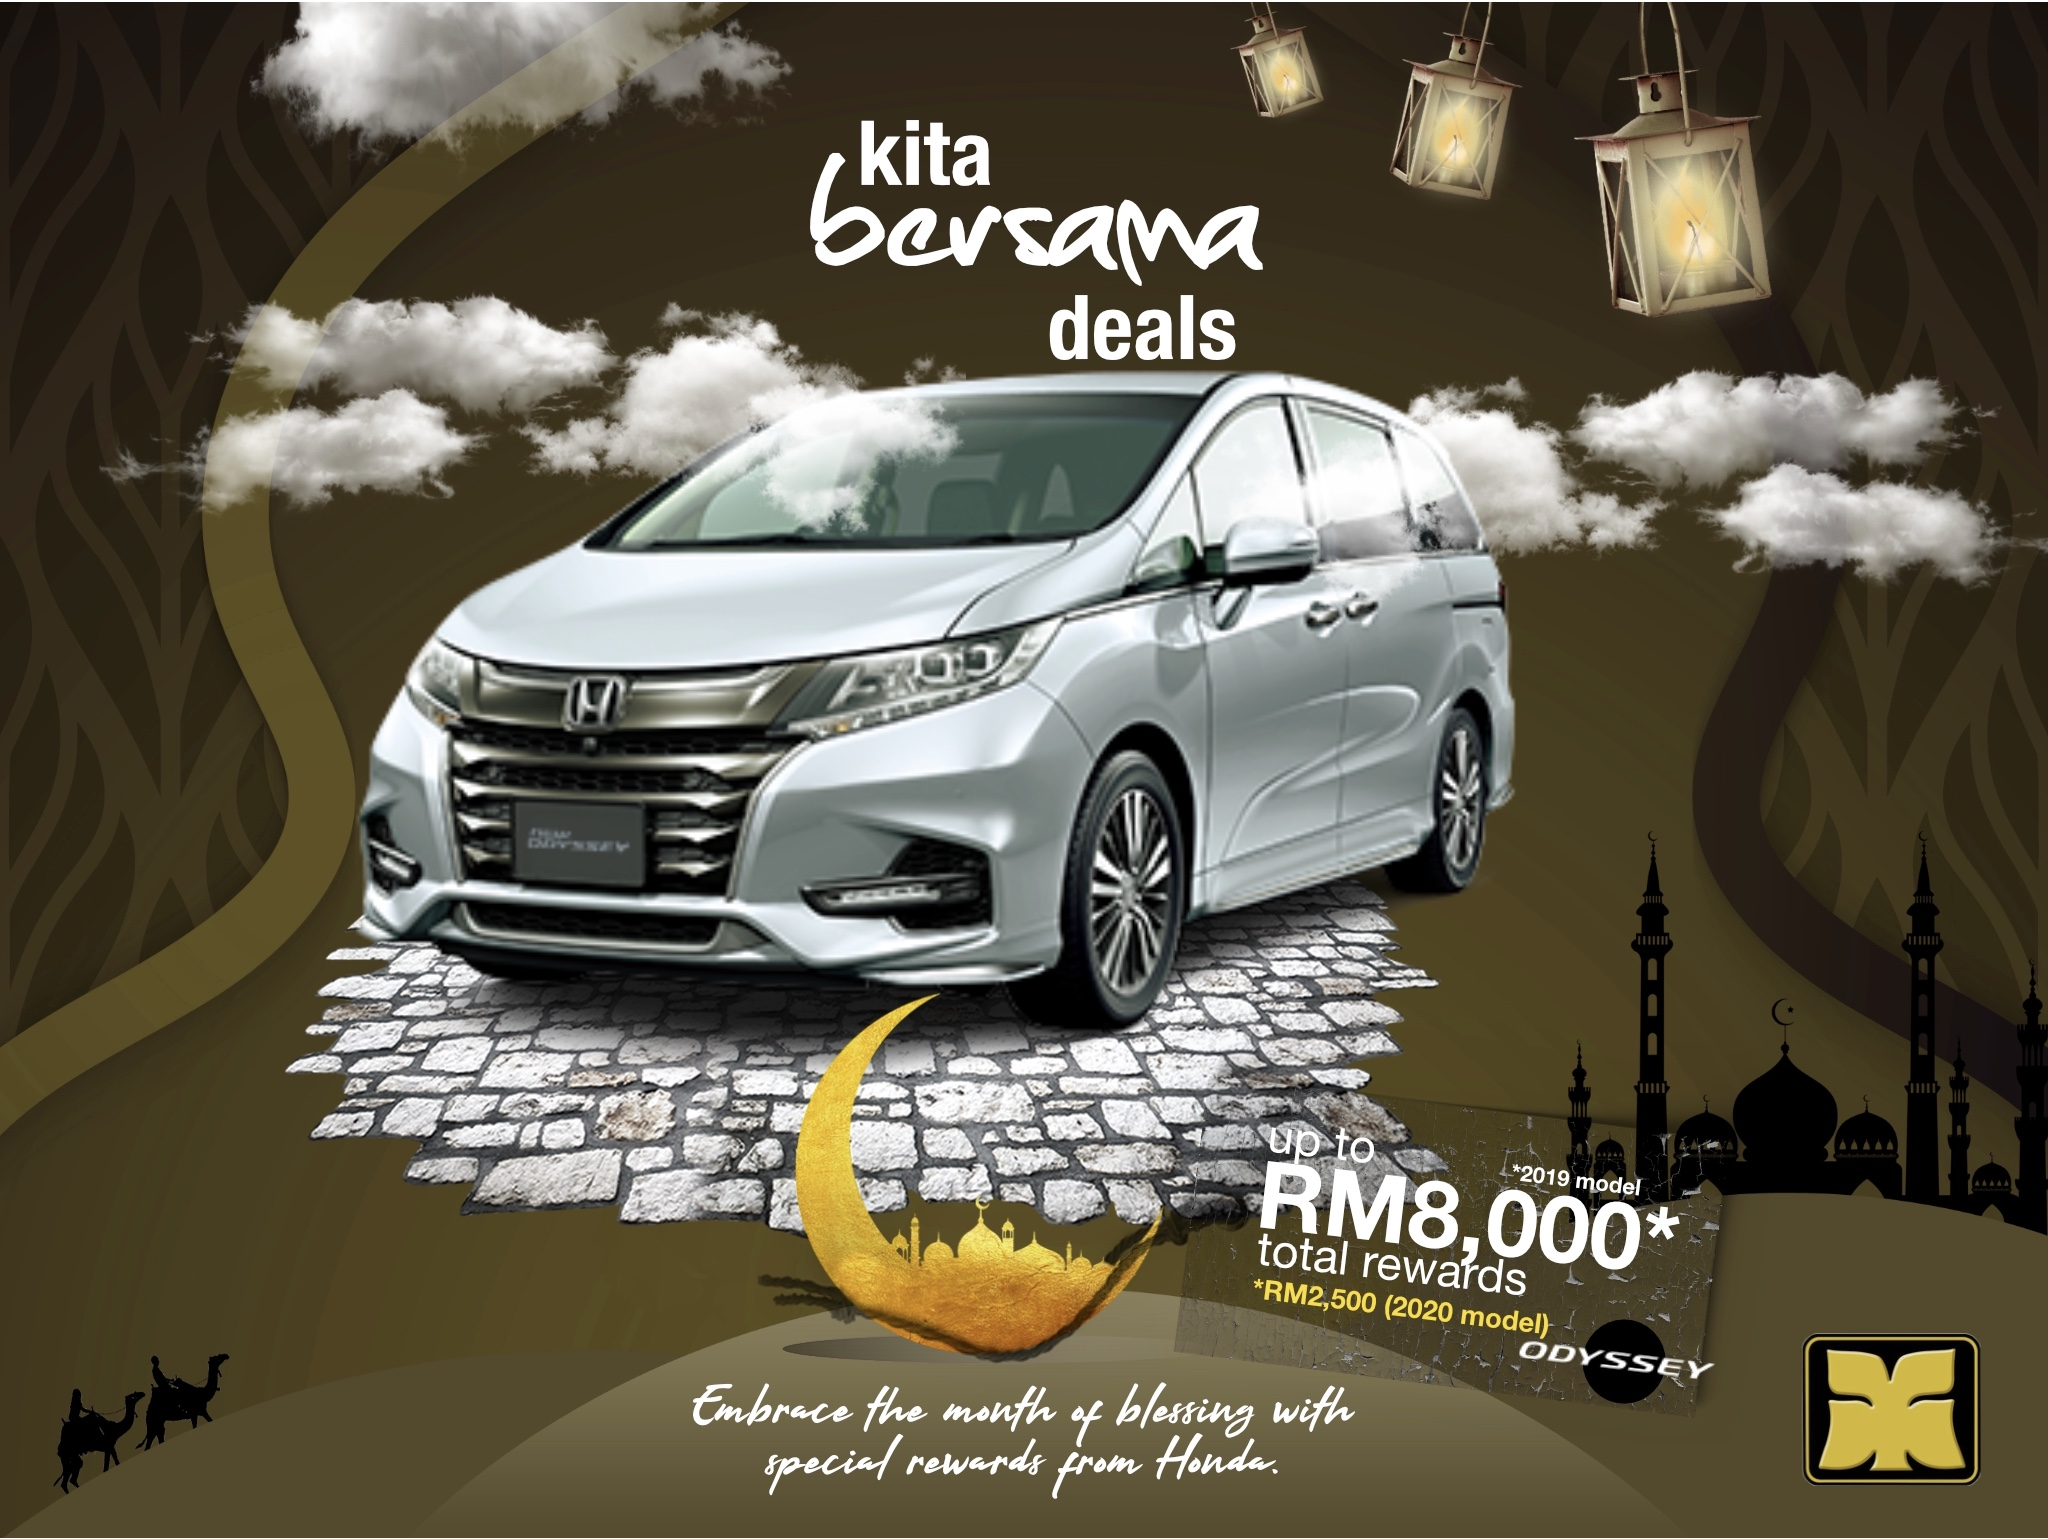 Month of Blessing Kita Bersama Deals Yong Ming Honda Odyssey